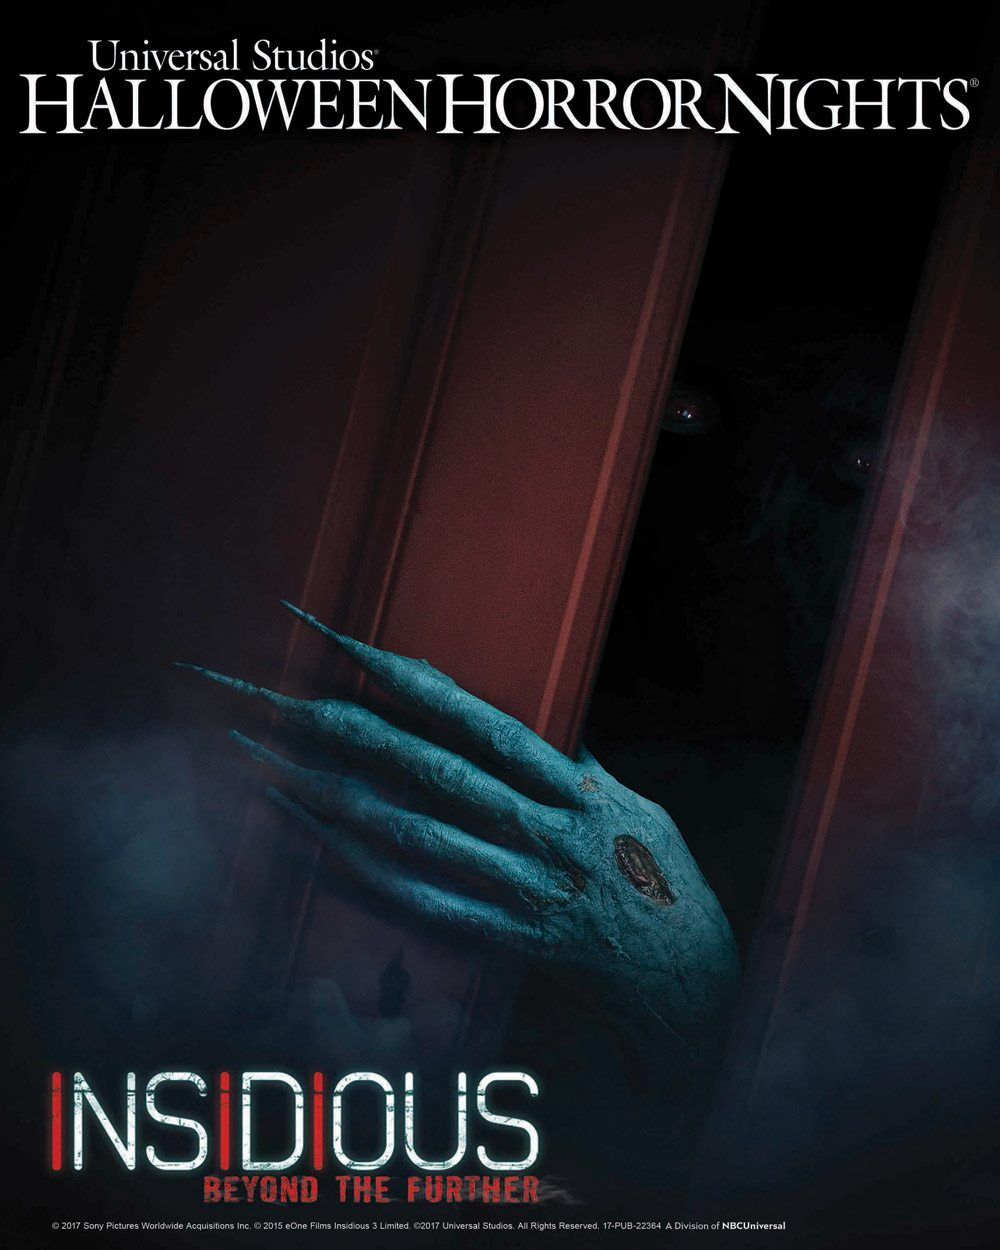 Insidious hhn - Universal Studios Hollywood Unleashes Insidious: Beyond the Further Maze for Halloween Horror Nights